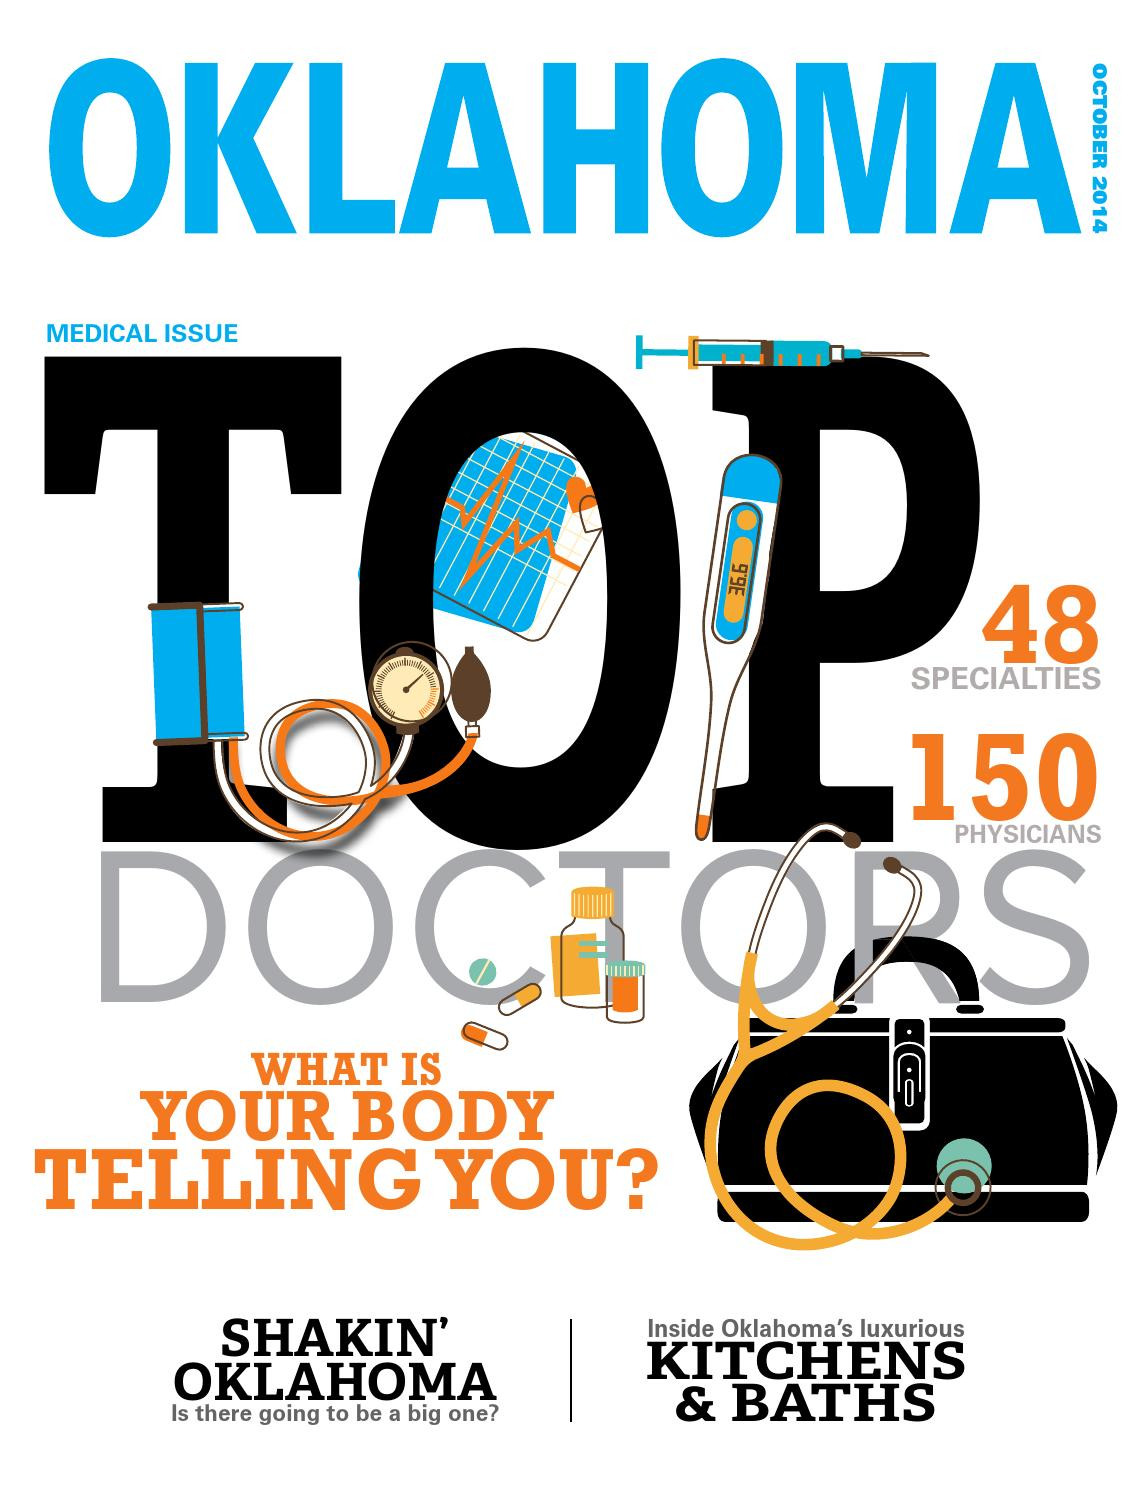 15 Awesome Hardwood Floor Refinishing Tulsa Ok 2021 free download hardwood floor refinishing tulsa ok of october 2014 oklahoma magazine by oklahoma magazine issuu throughout page 1